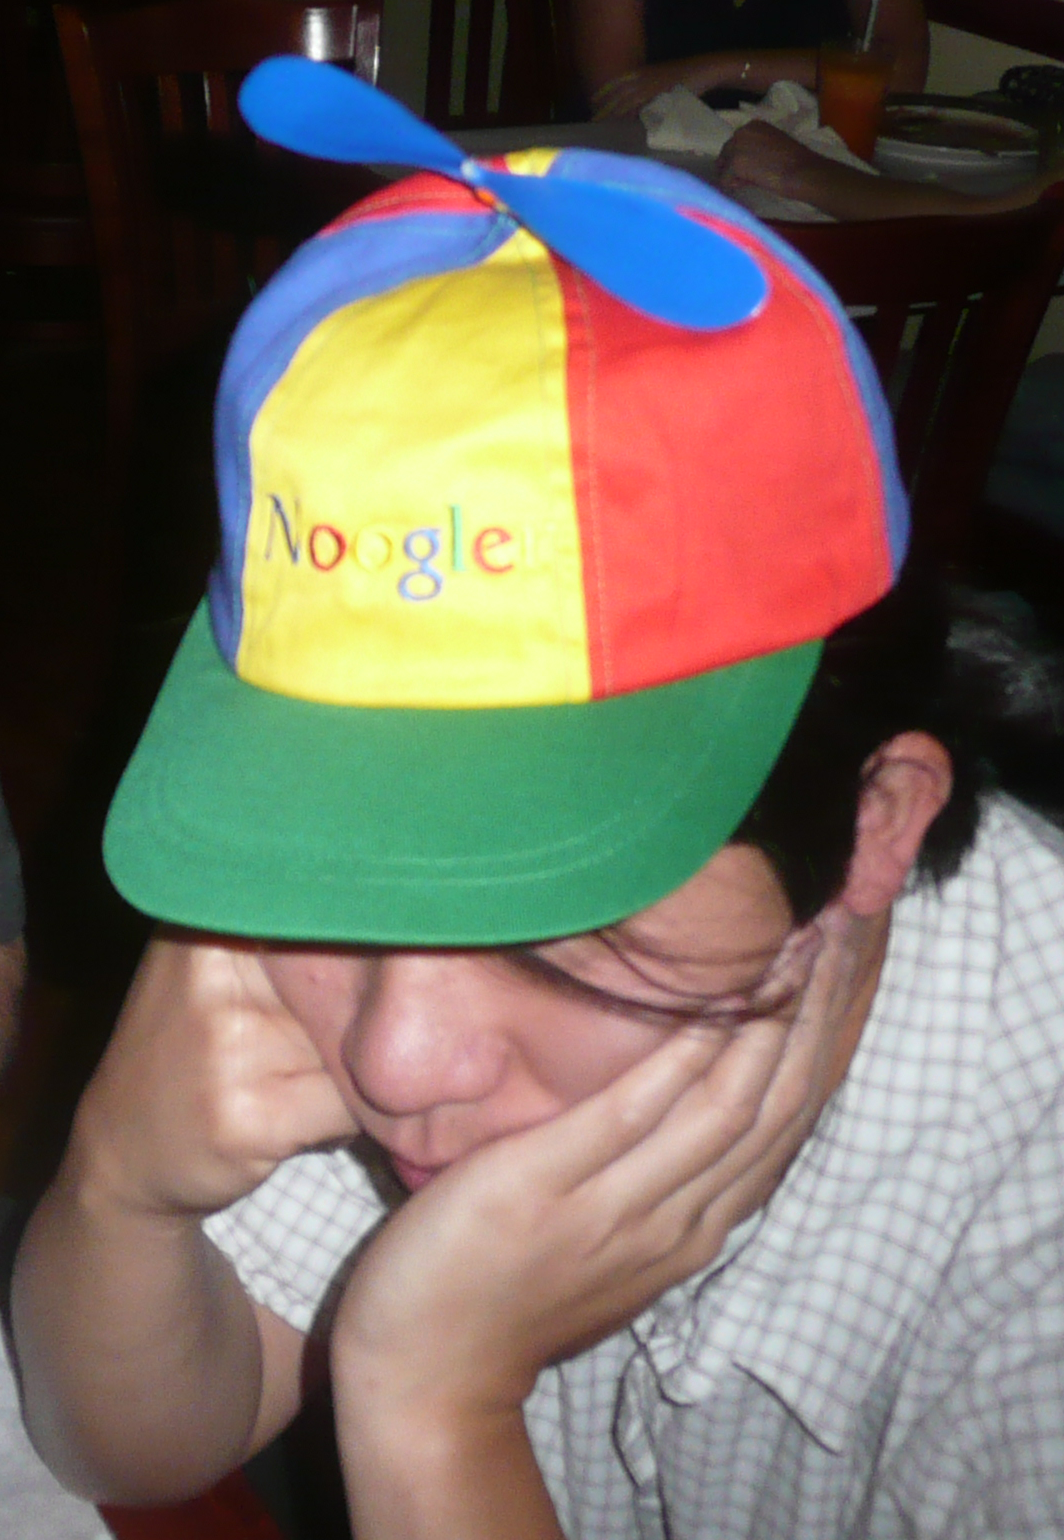 A photo of a Google themed hat saying Noogle